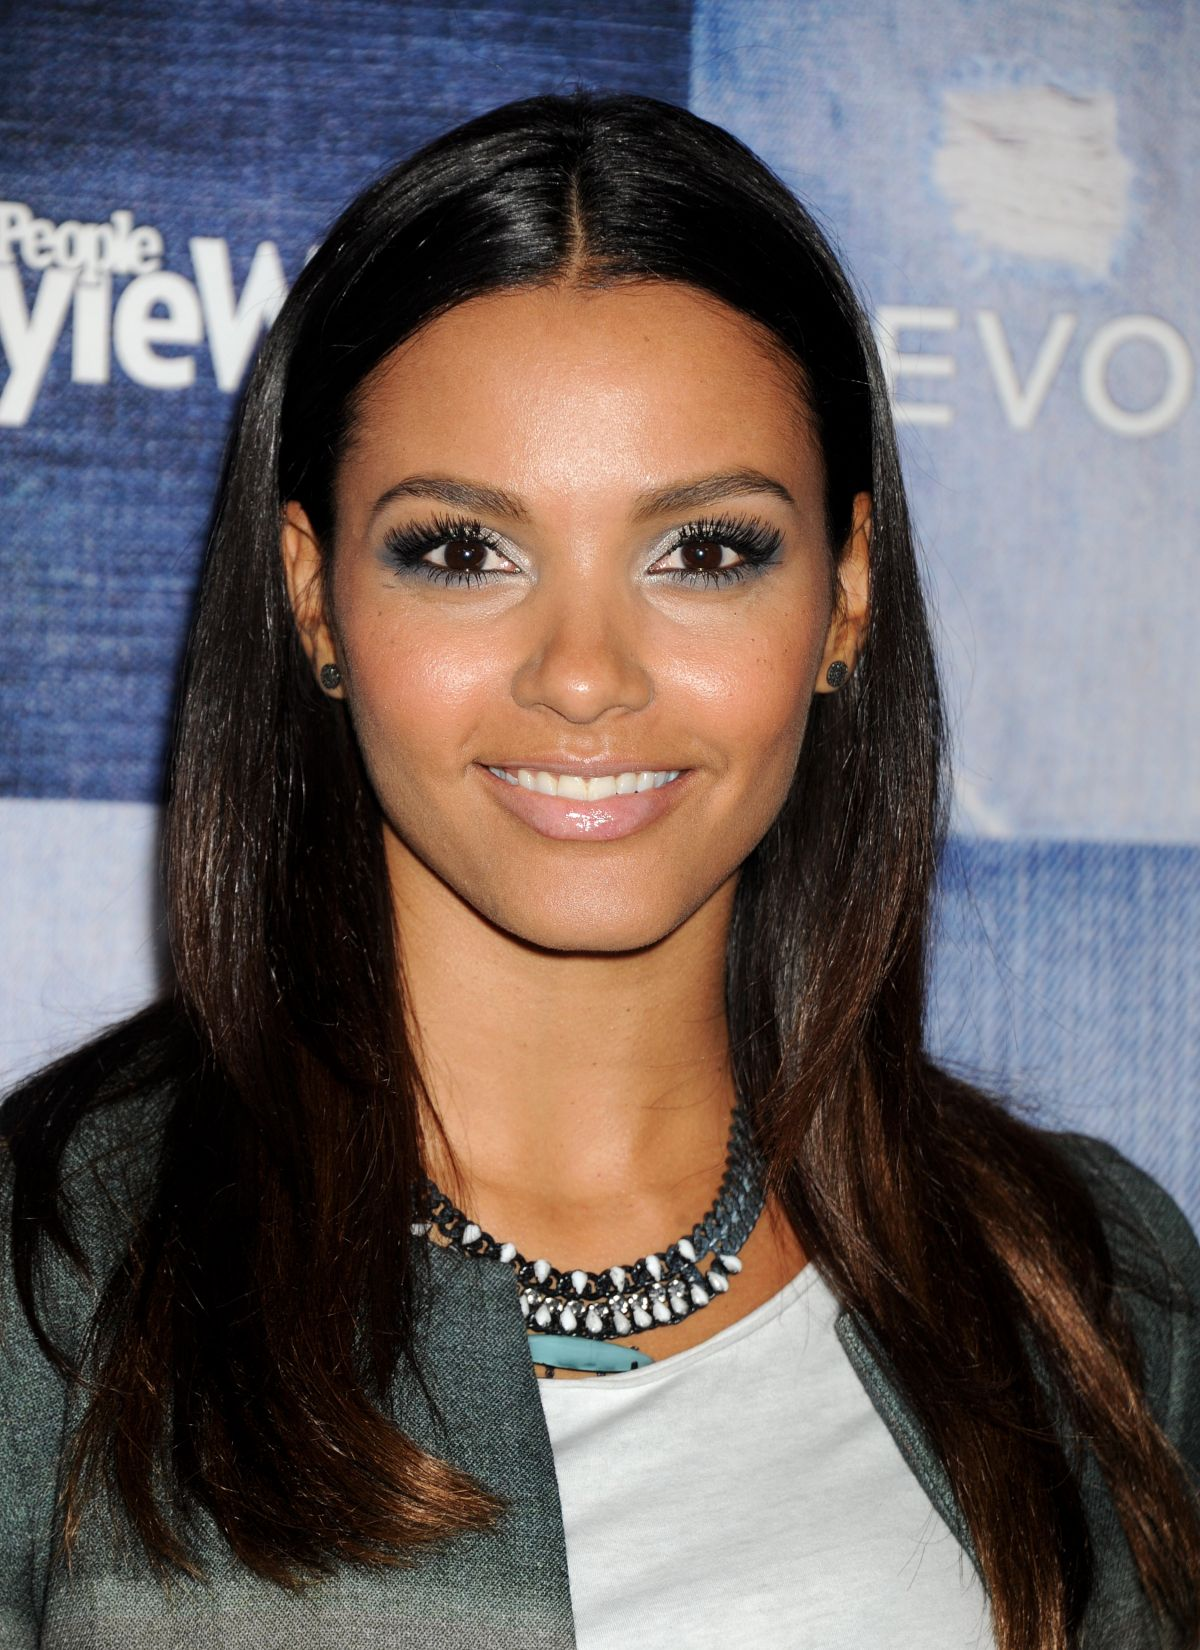 jessica lucas gotham wiki fandom powered by wikia